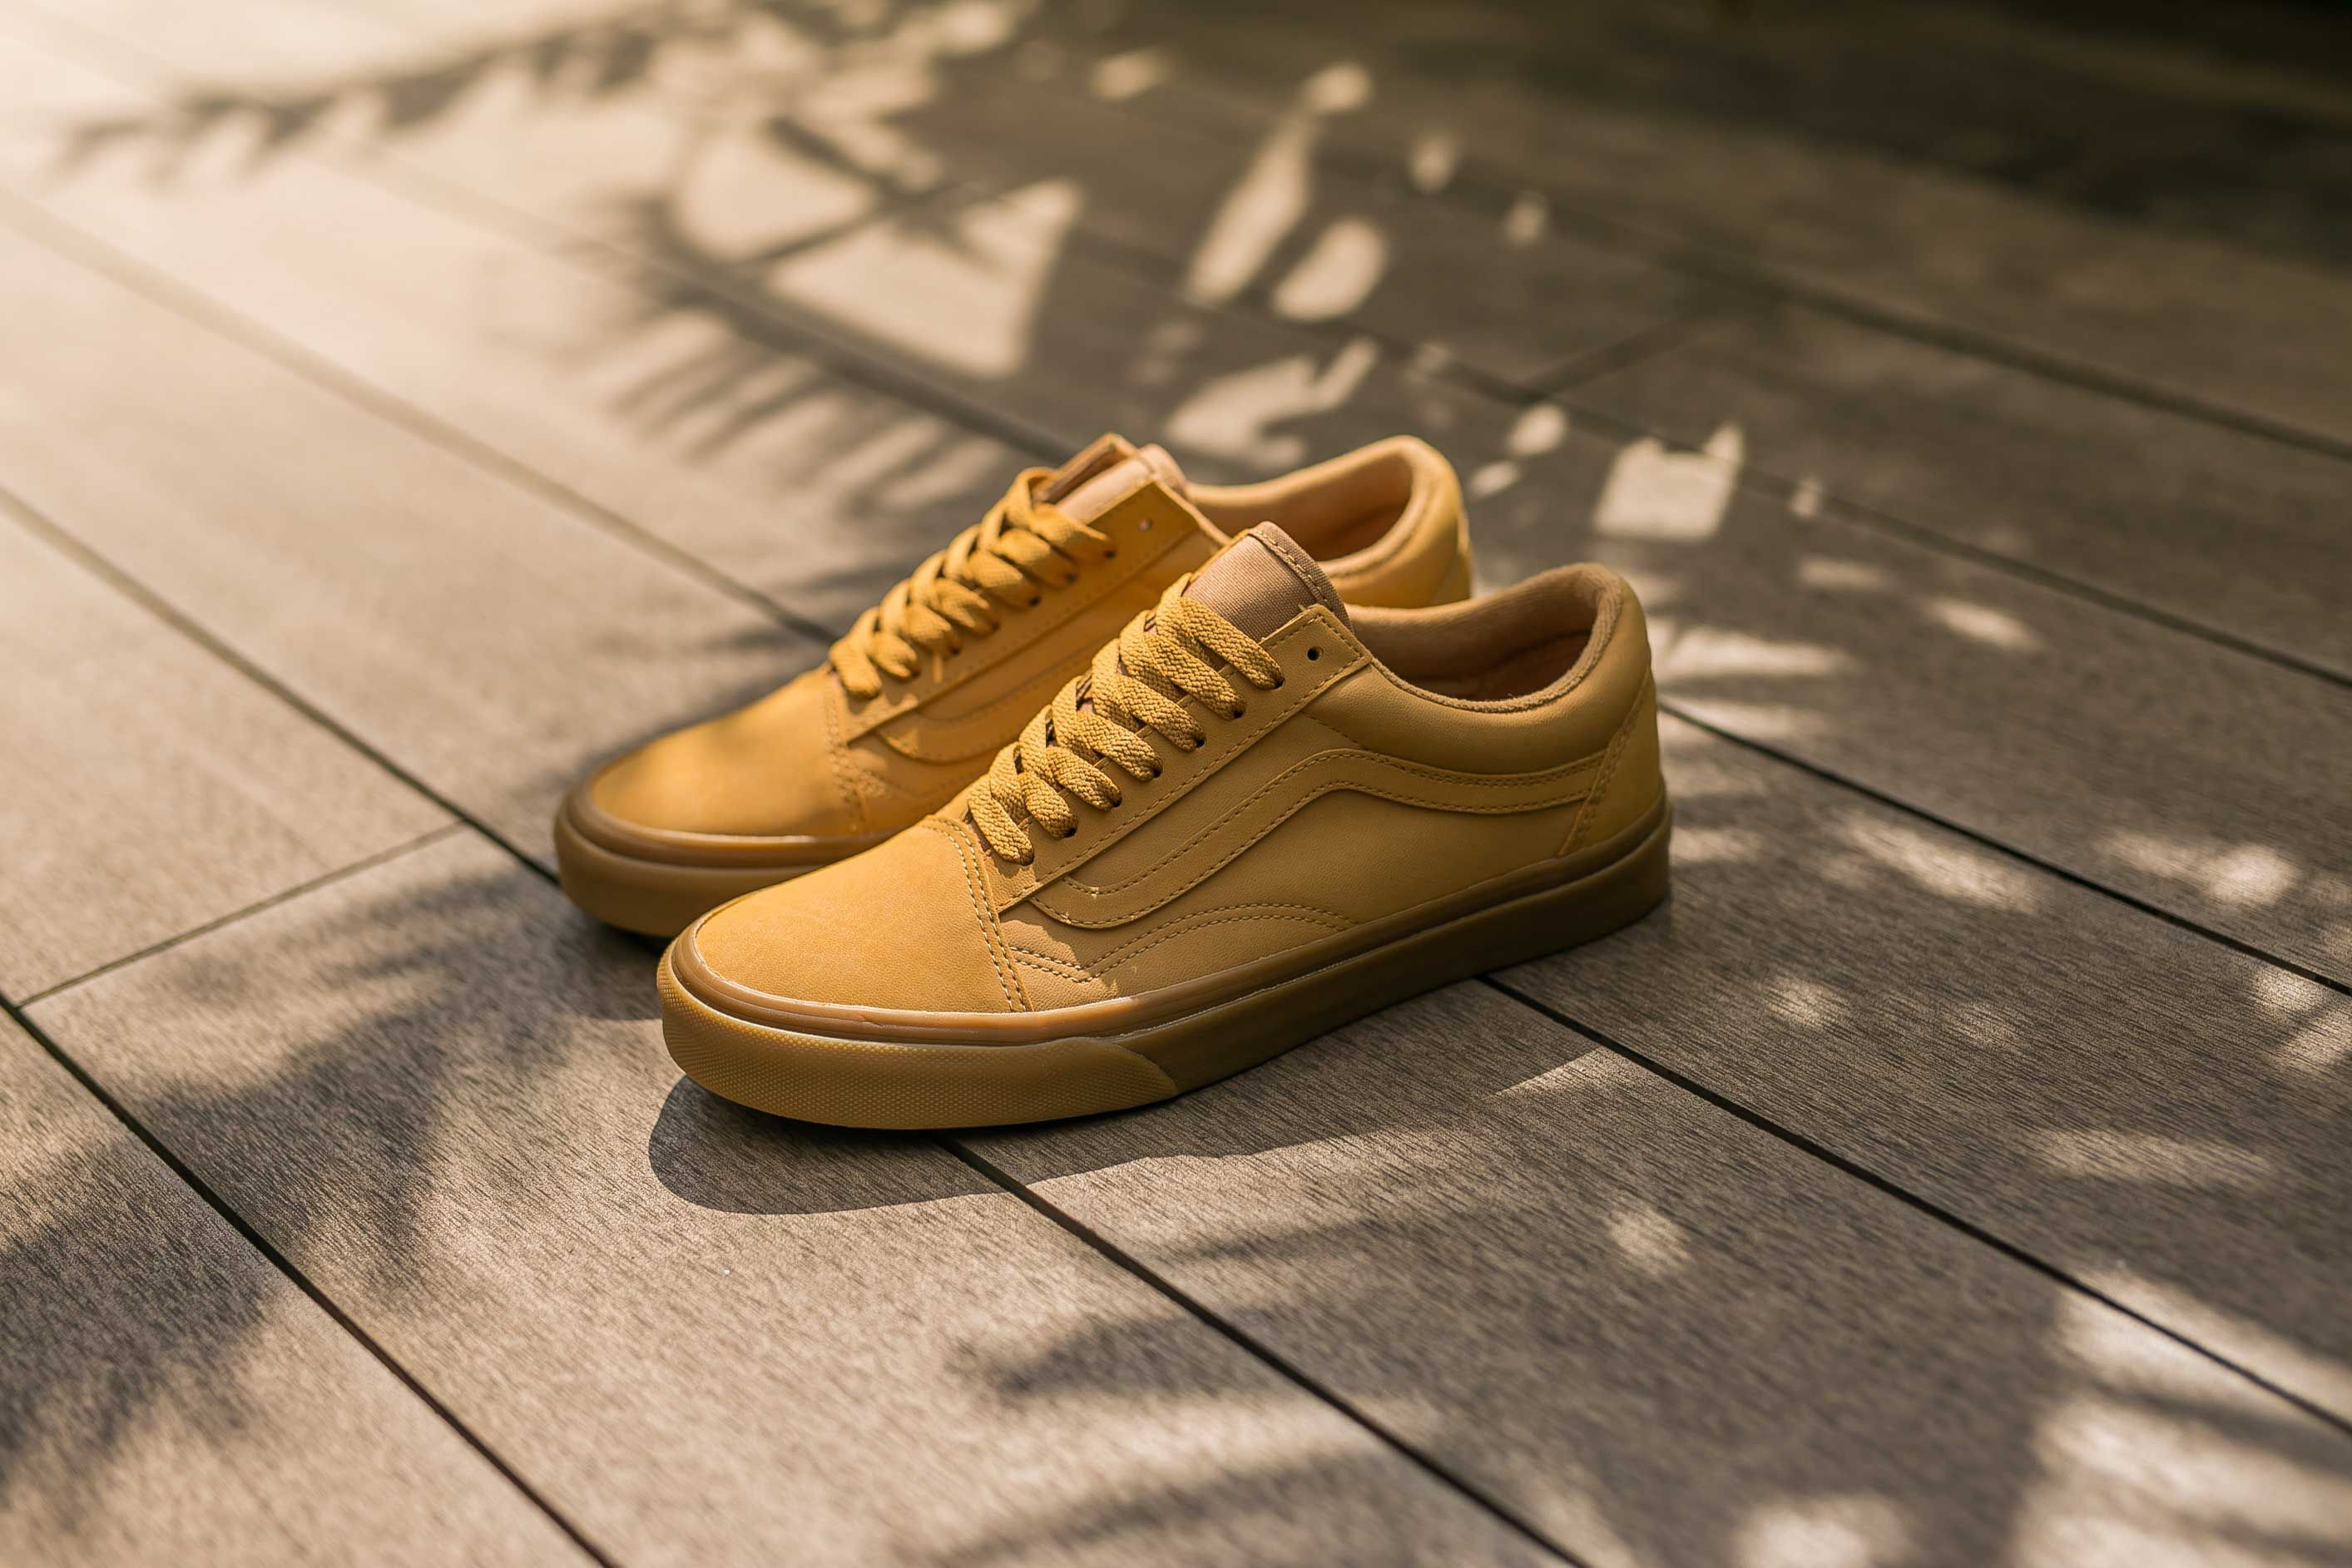 Vans The Vansbuck #OldSkool, the Vans classic skate shoe and